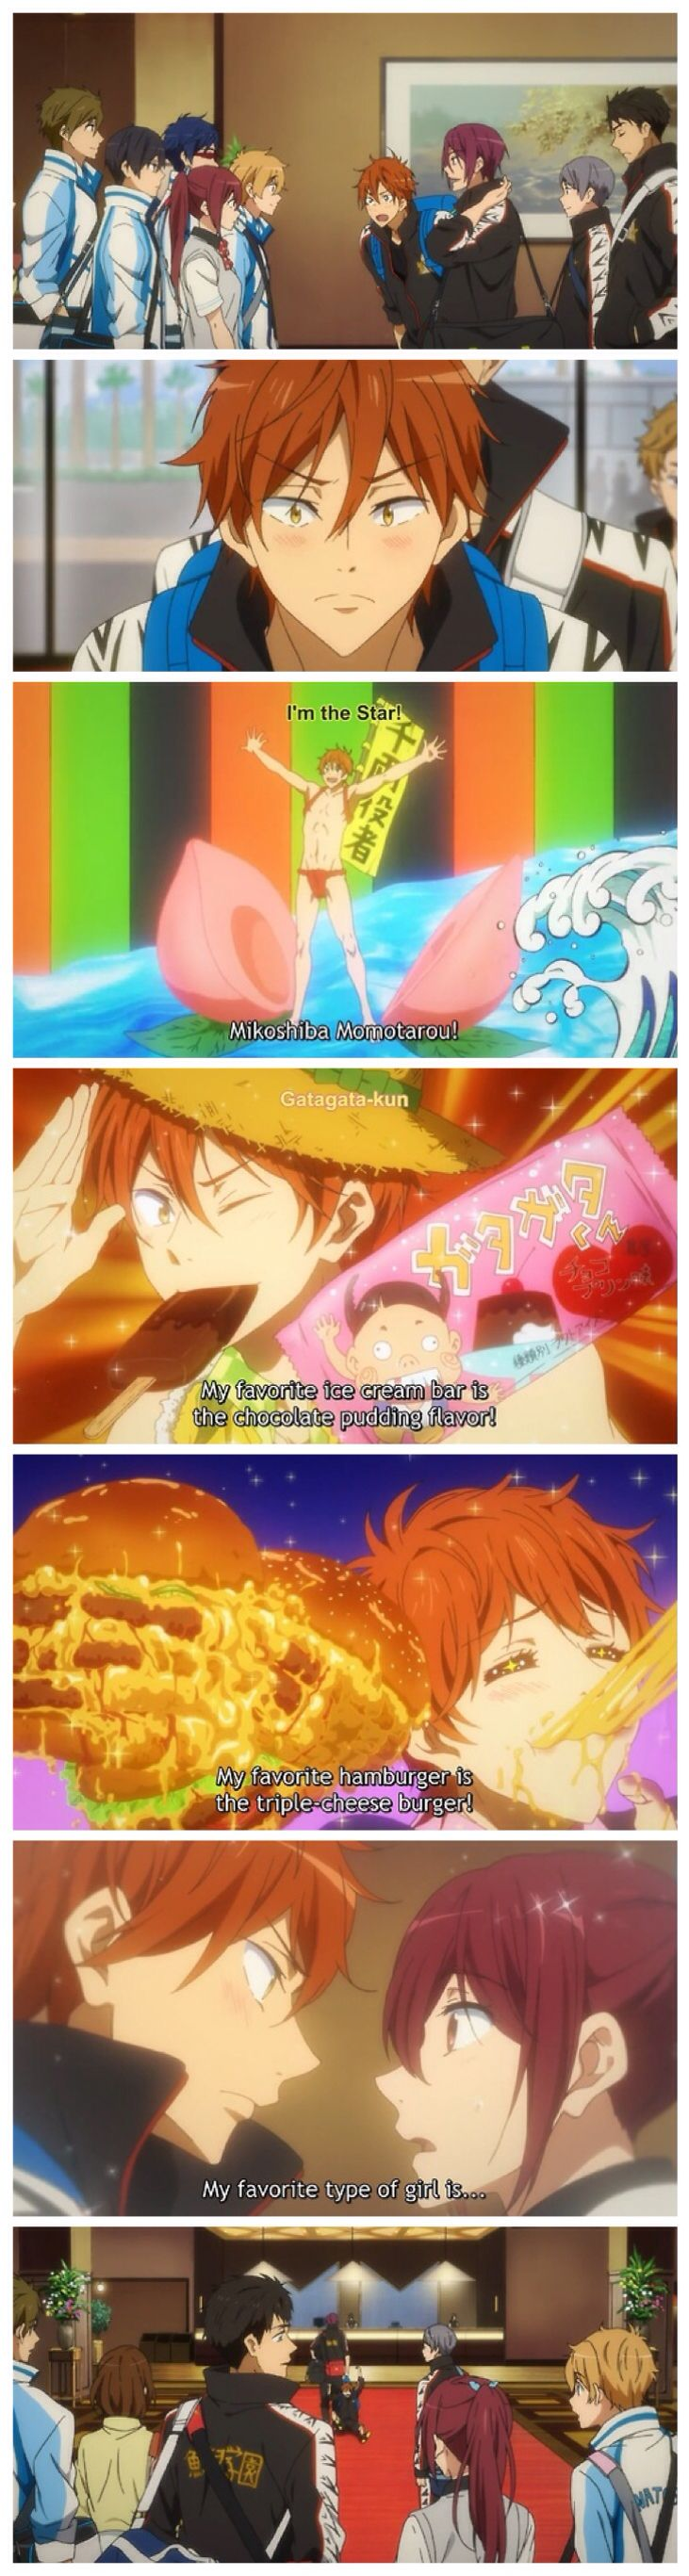 Free! ES ~~ MOMO THERE IS NO PLACE FOR YOUR STRAIGHTNESS IN THIS ANIME TAKE IT SOMEWHERE ELSE